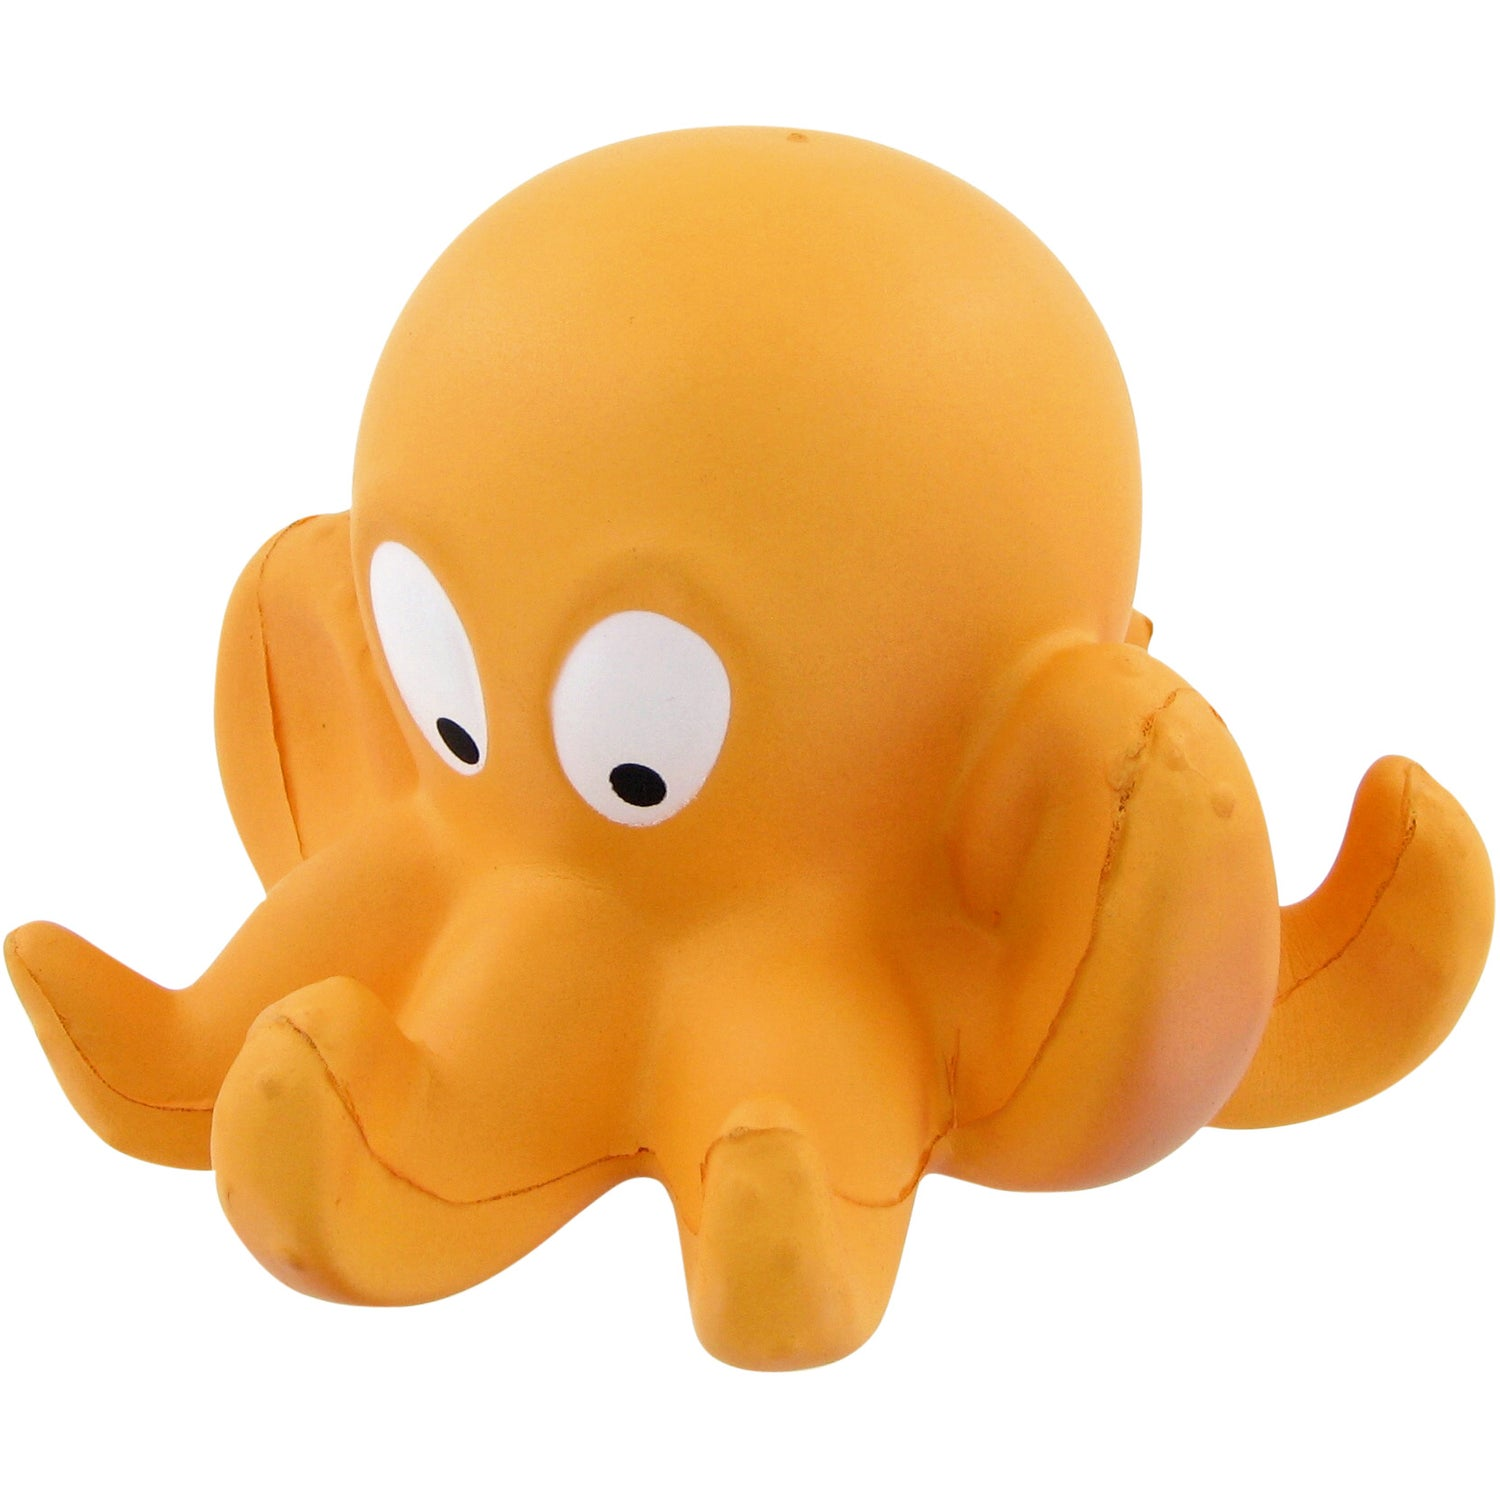 click here to order octopus stress toys printed with your